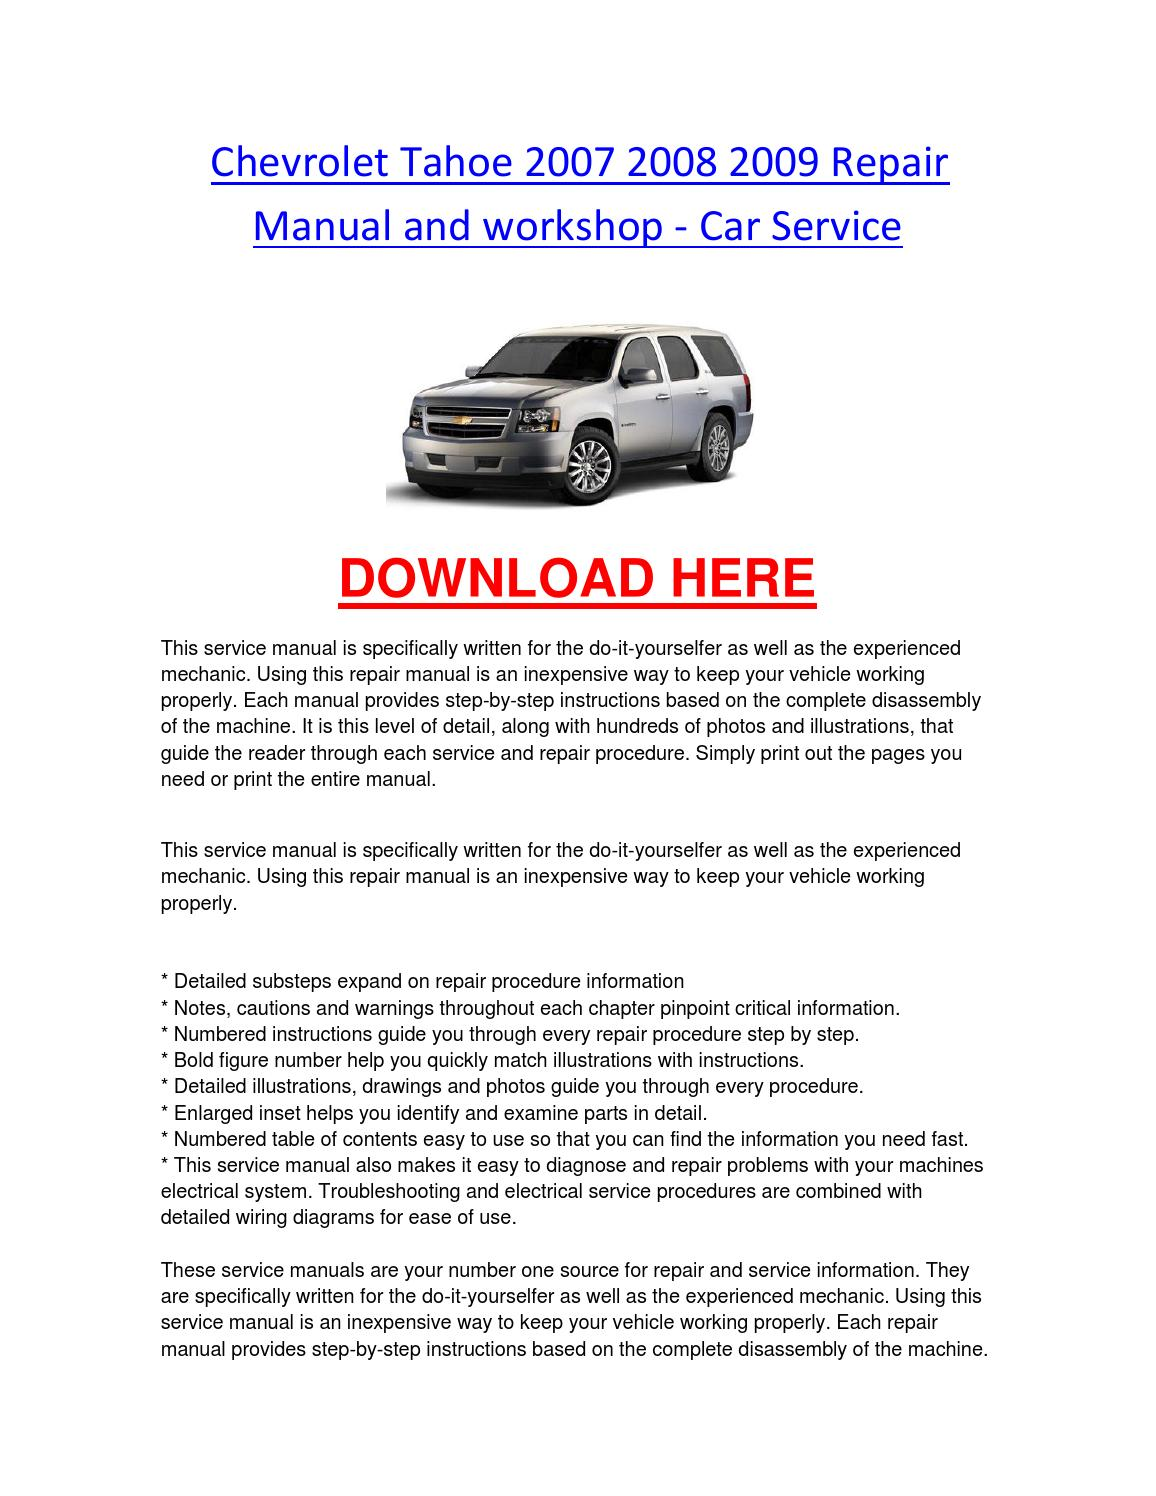 hight resolution of chevrolet tahoe 2007 2008 2009 repair manual and workshop car service